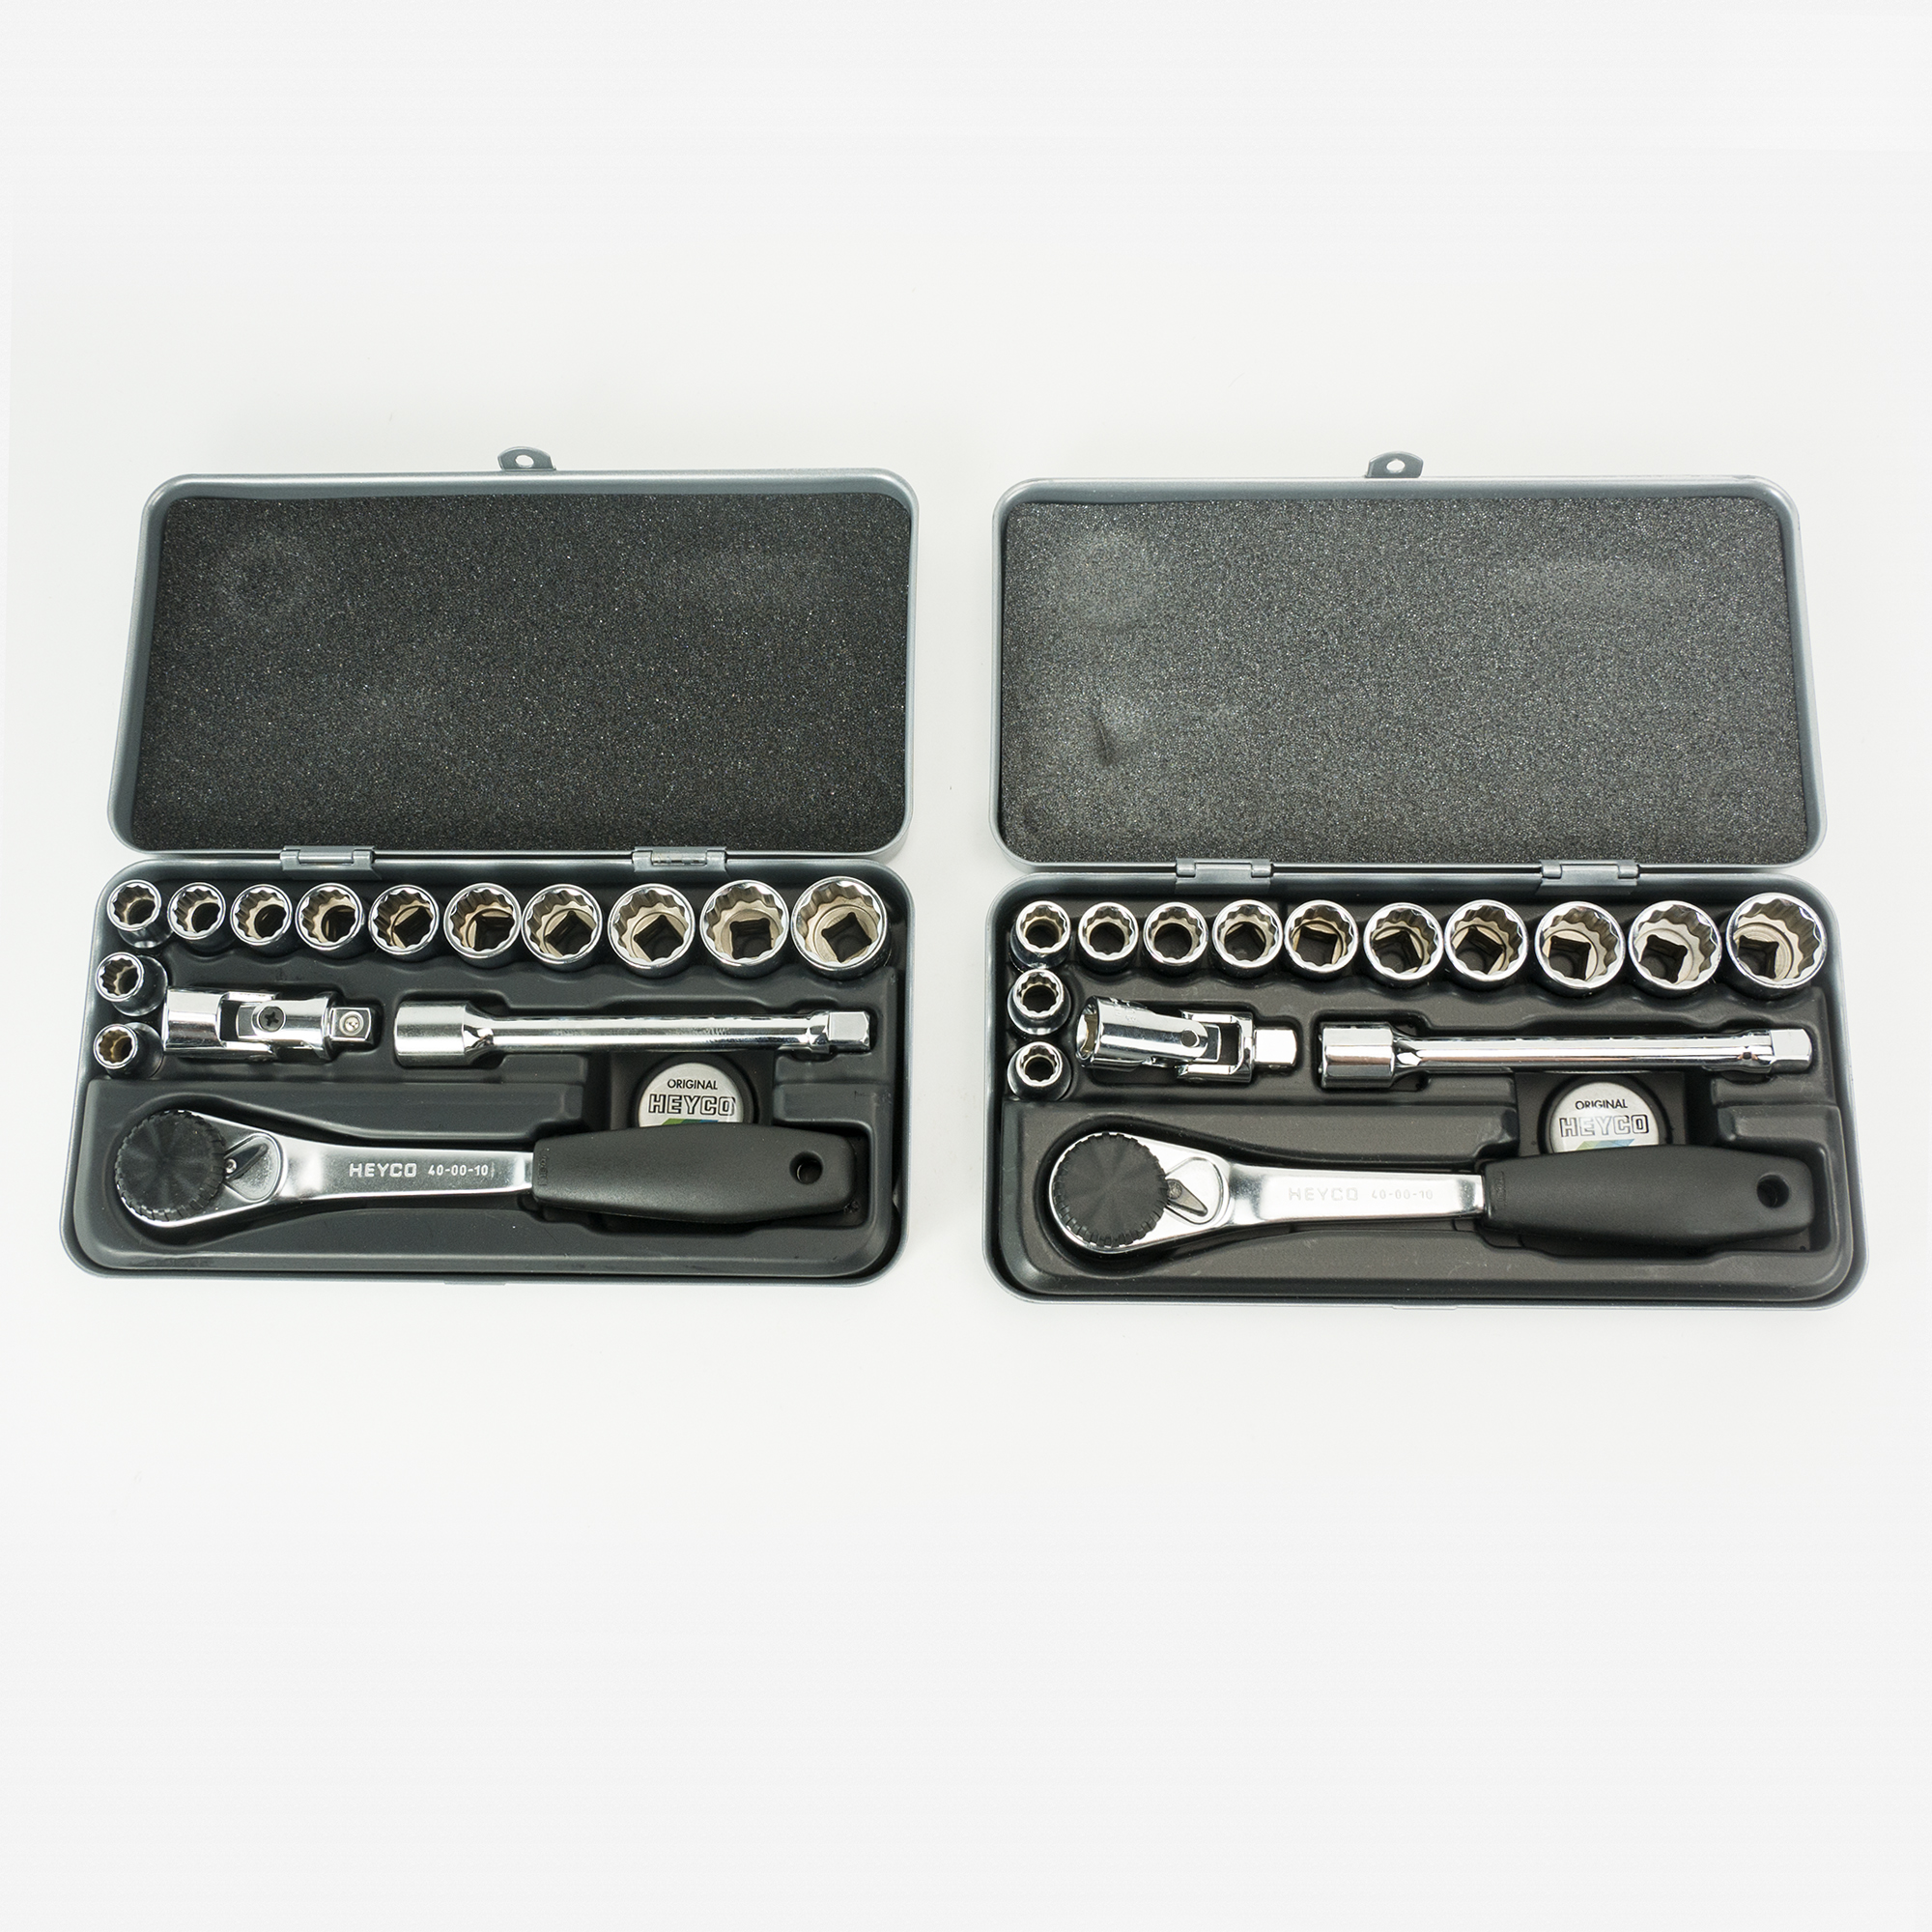 "Buy One Get One Heyco 15 Piece Metric 12 Point 3/8"" Socket Box Set, 2pcs - KC Tool"